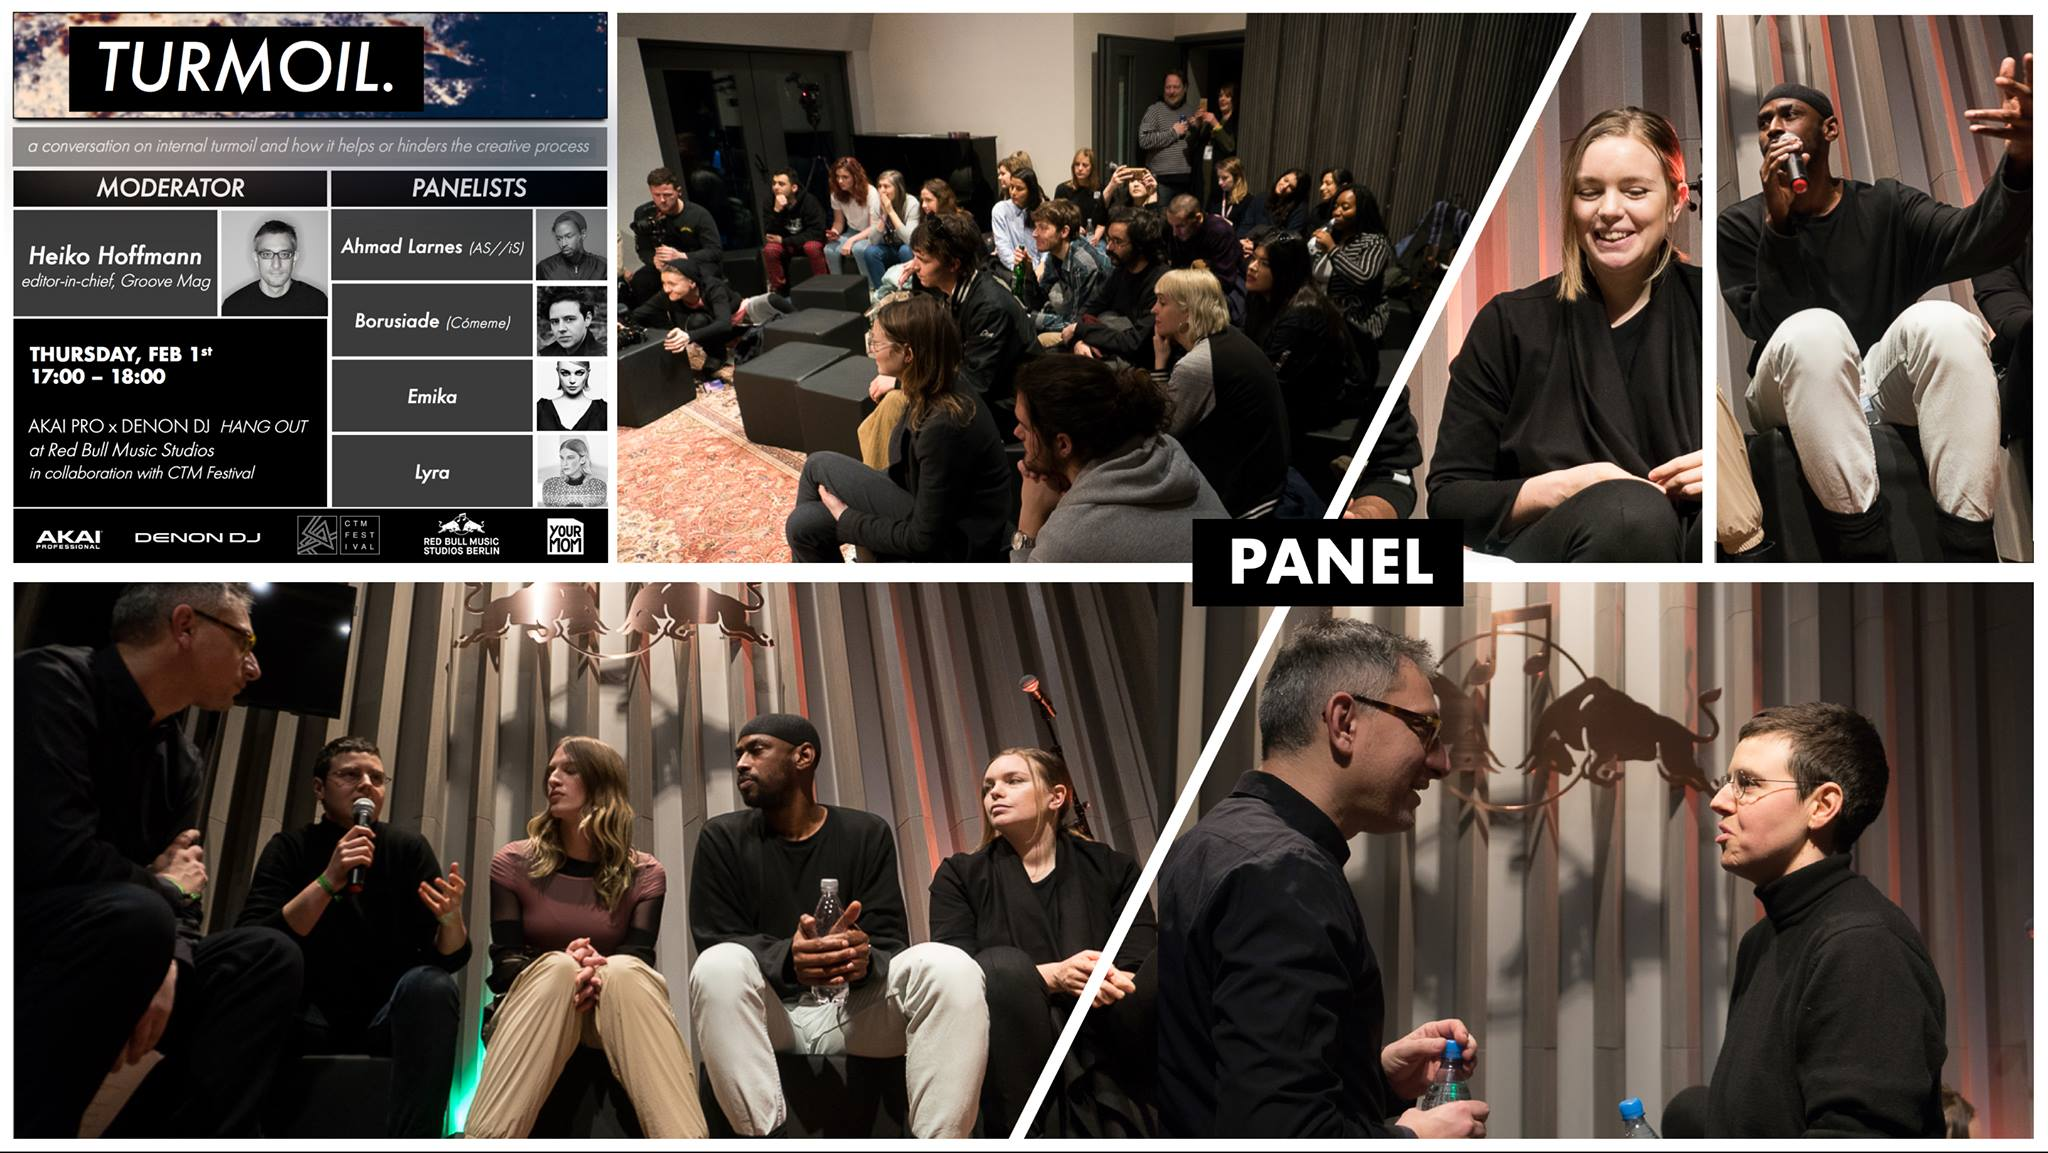 PANEL:  A conversation on internal turmoil and how it helps or hinders the creative process   Moderator:  Heiko Hoffmann ( GROOVE-Magazin )  Panelists:  Borusiade, Lyra Pramuk, Ahmad Larnes, Emika  A touching and inspirational talk. So much talent in one room altogether from inspiring influencers, innovators, and artists based in Berlin.